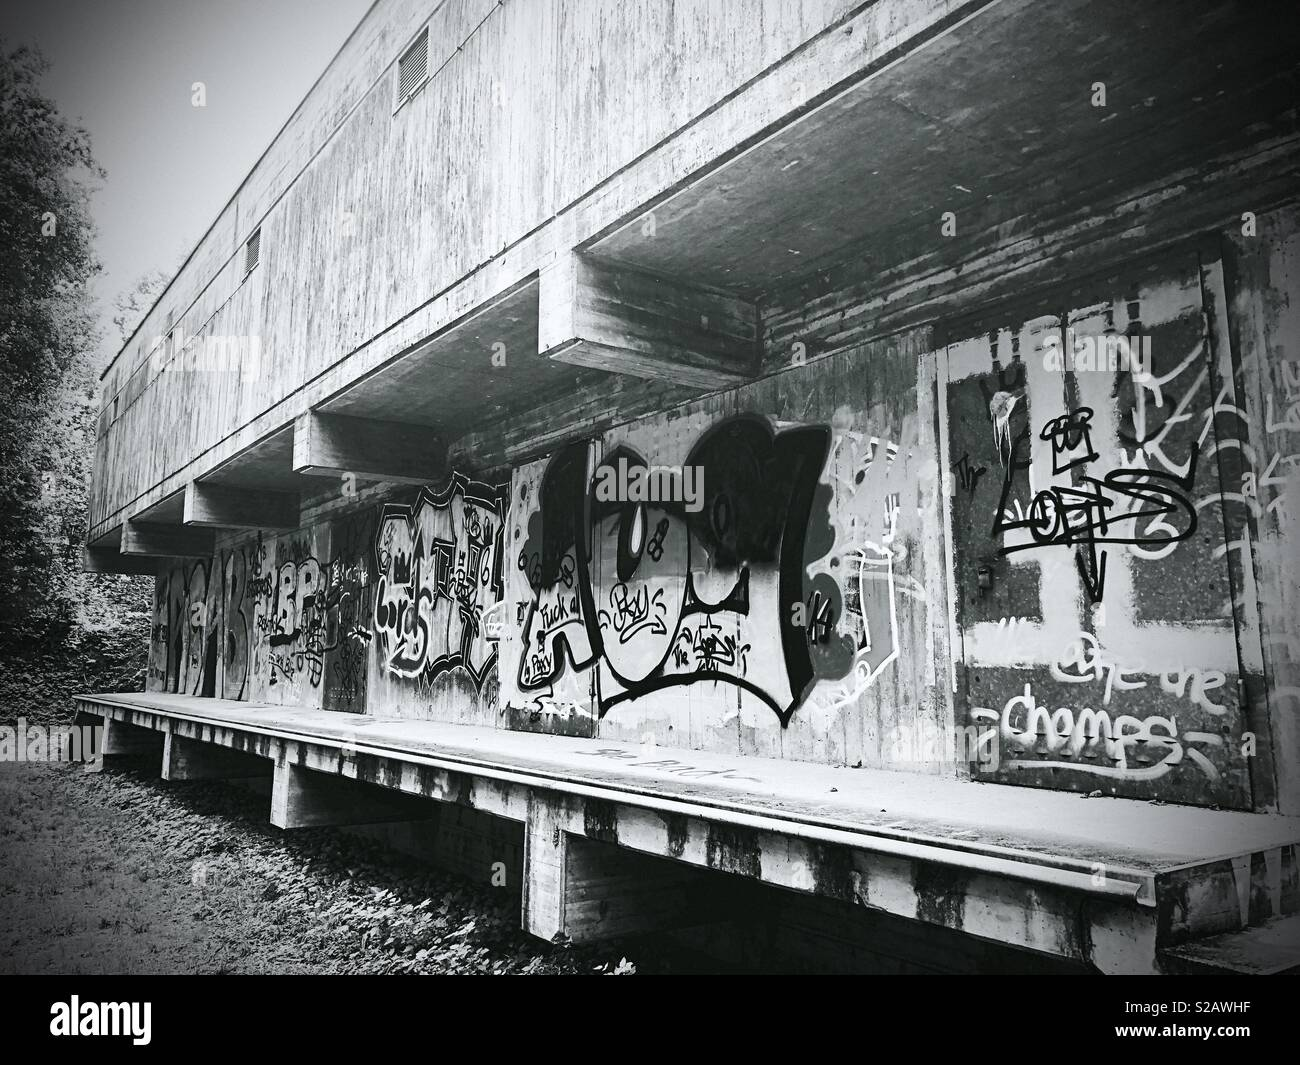 Graffiti on the side of a building - Stock Image